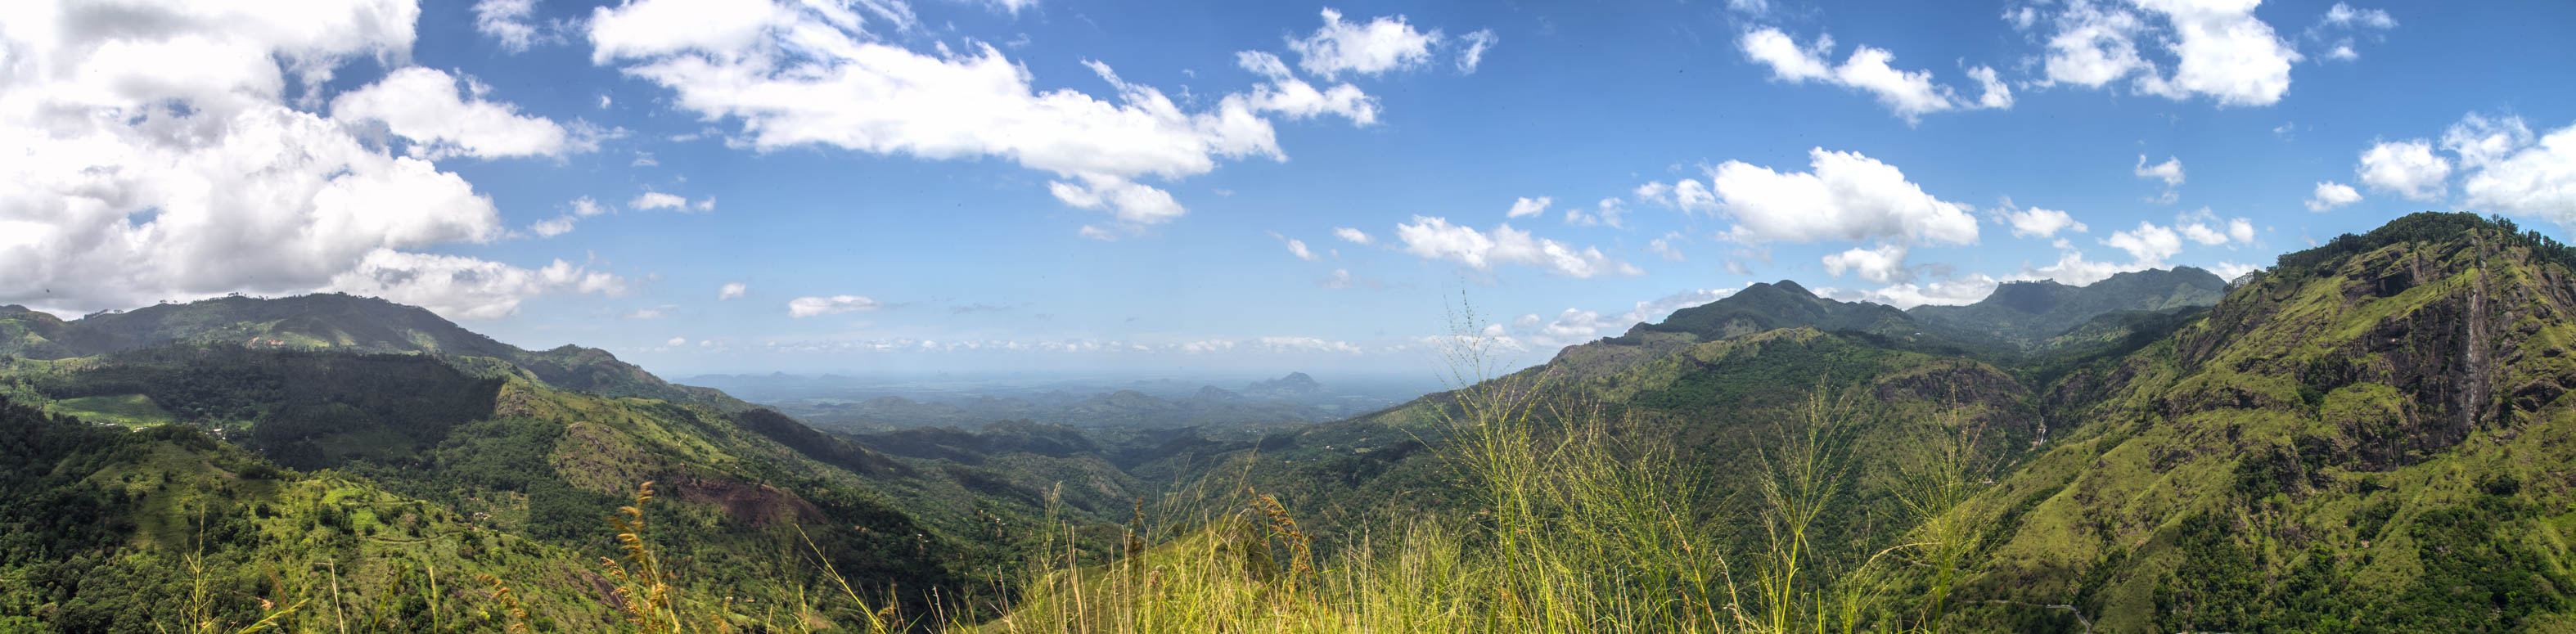 Das Panorama am Little Adam's Peak